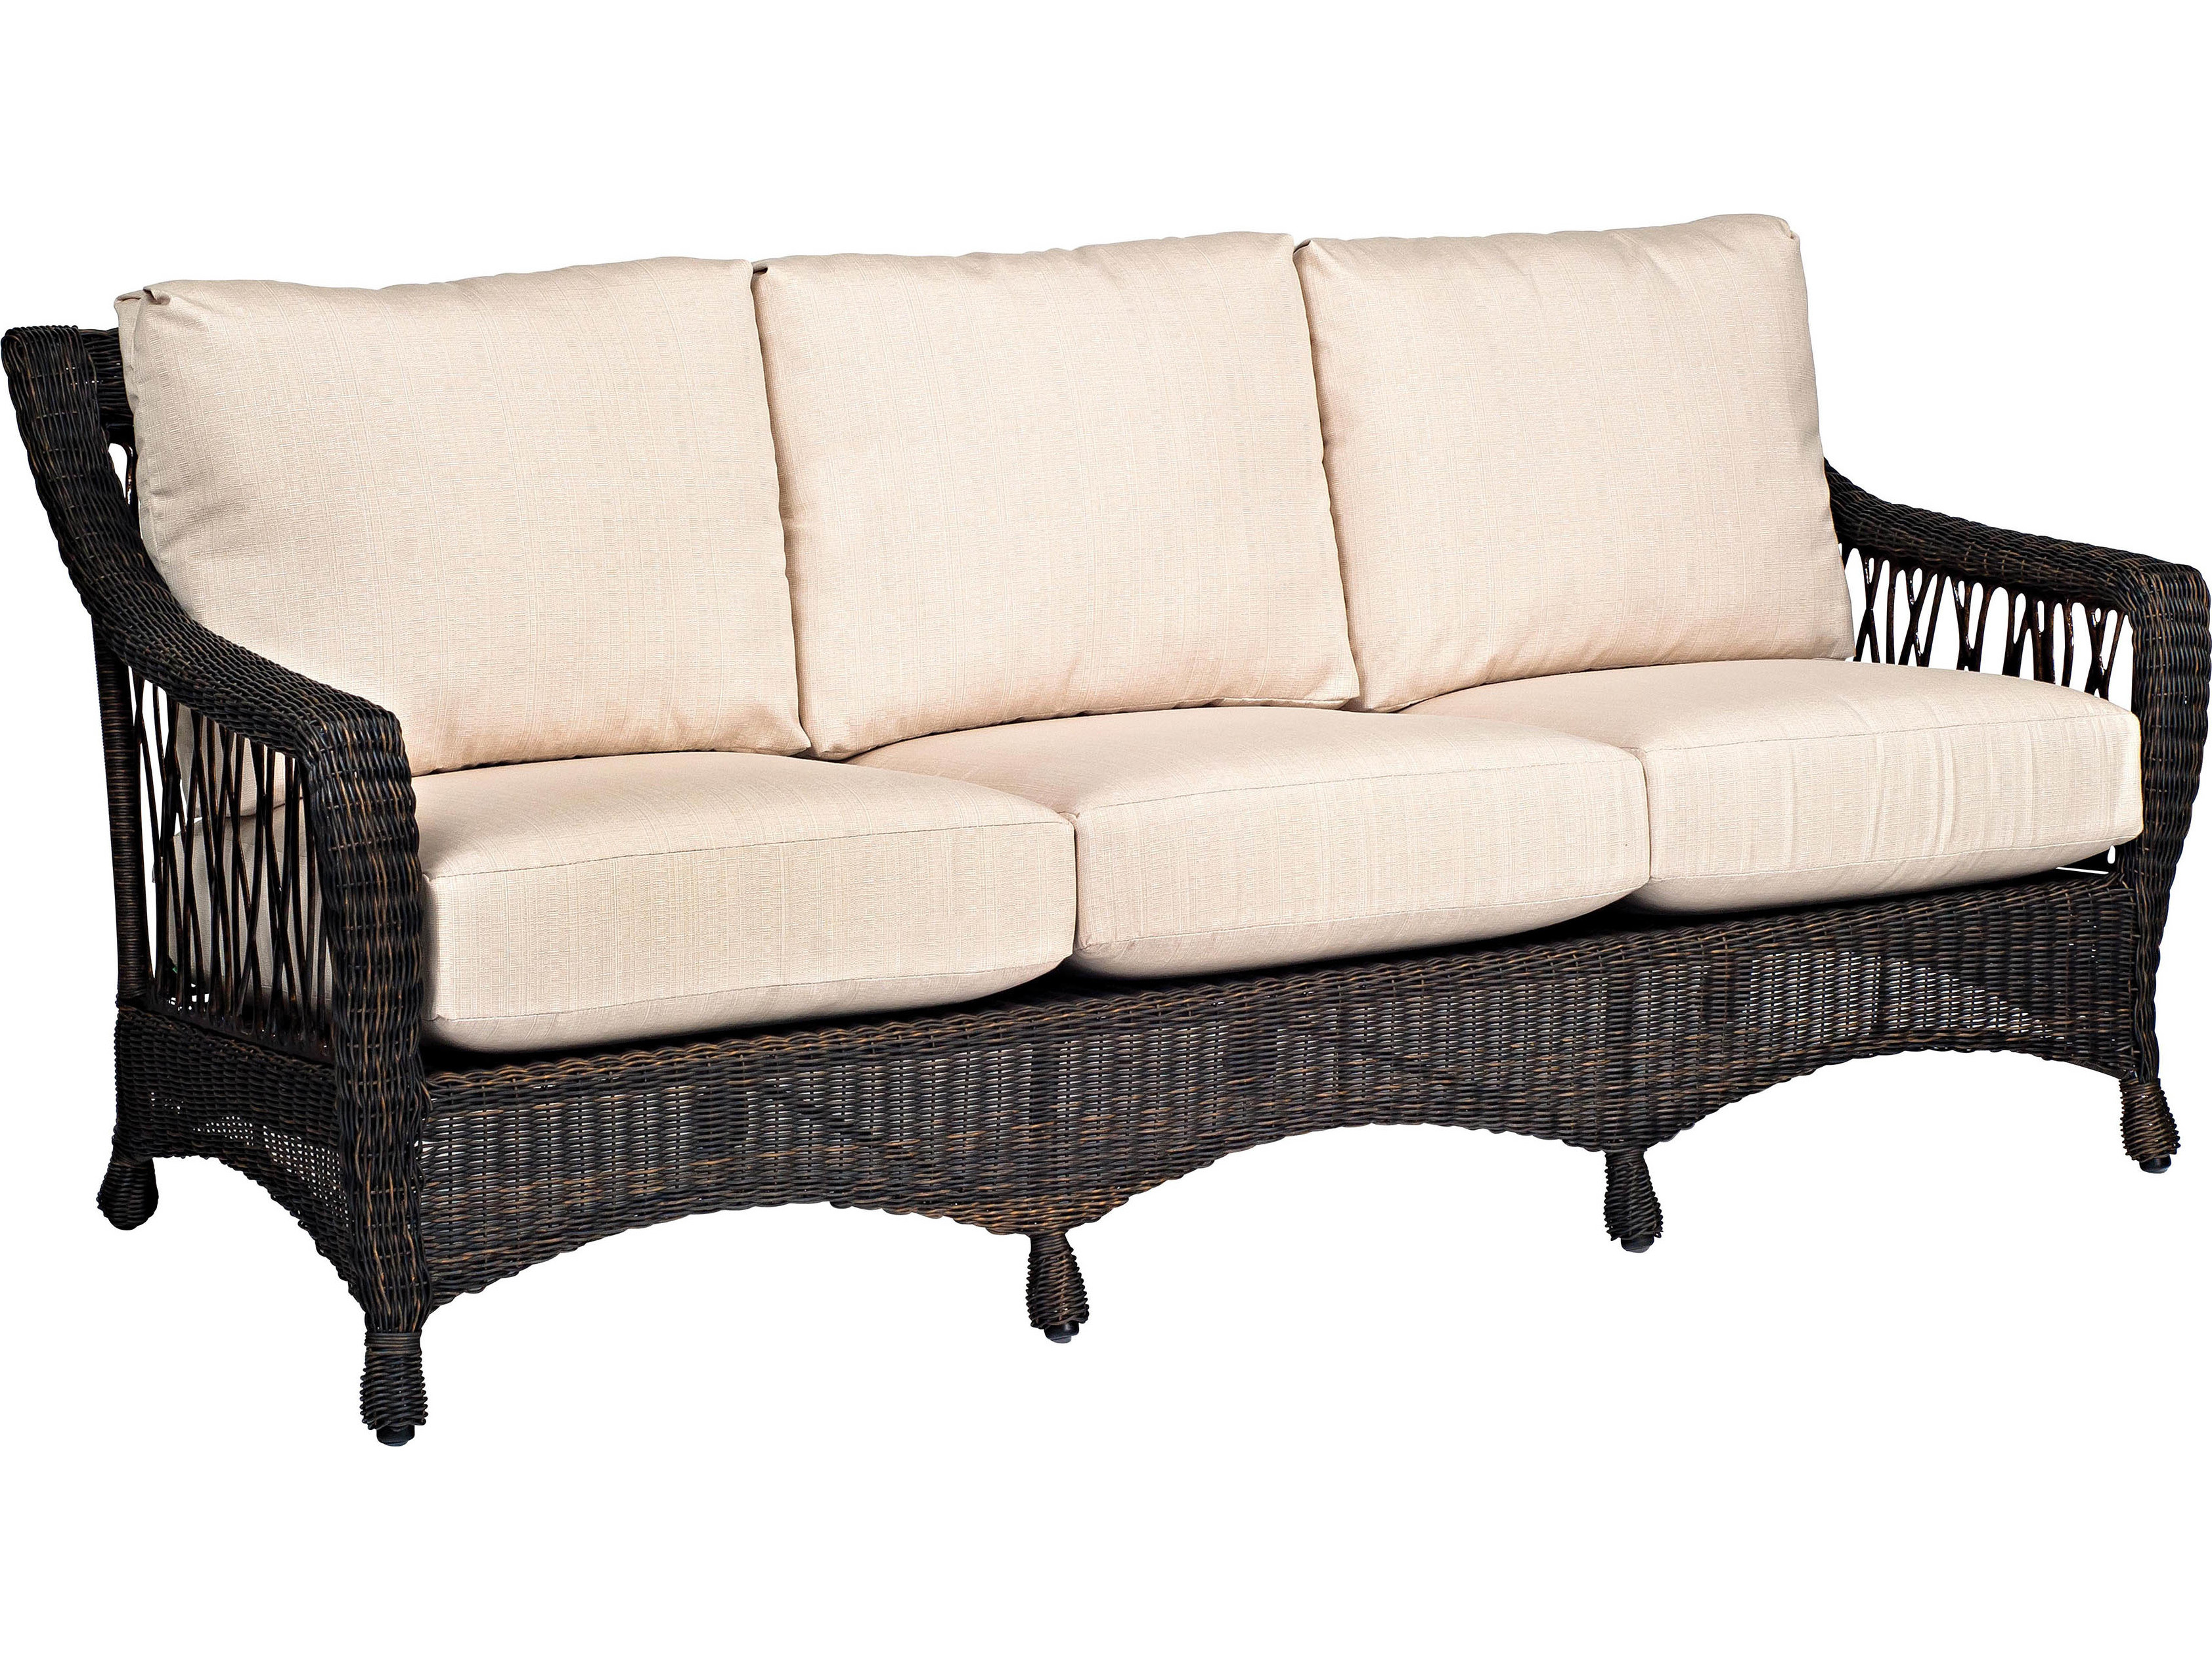 replacement cushions for sleeper sofa couches sofas furniture woodard serengeti 910020ch